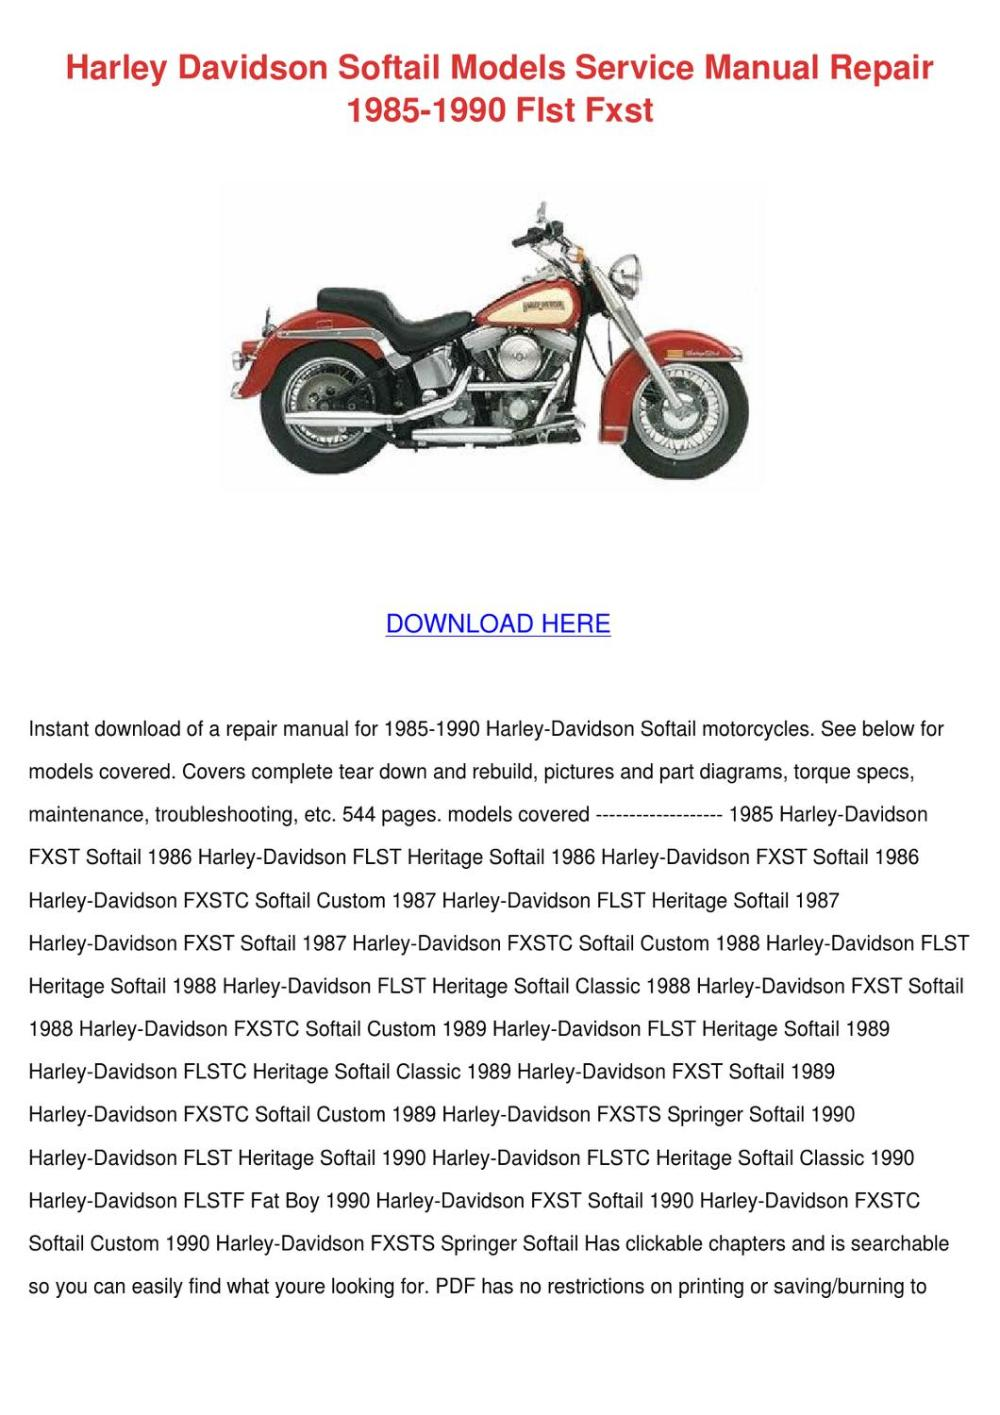 medium resolution of harley davidson softail models service manual